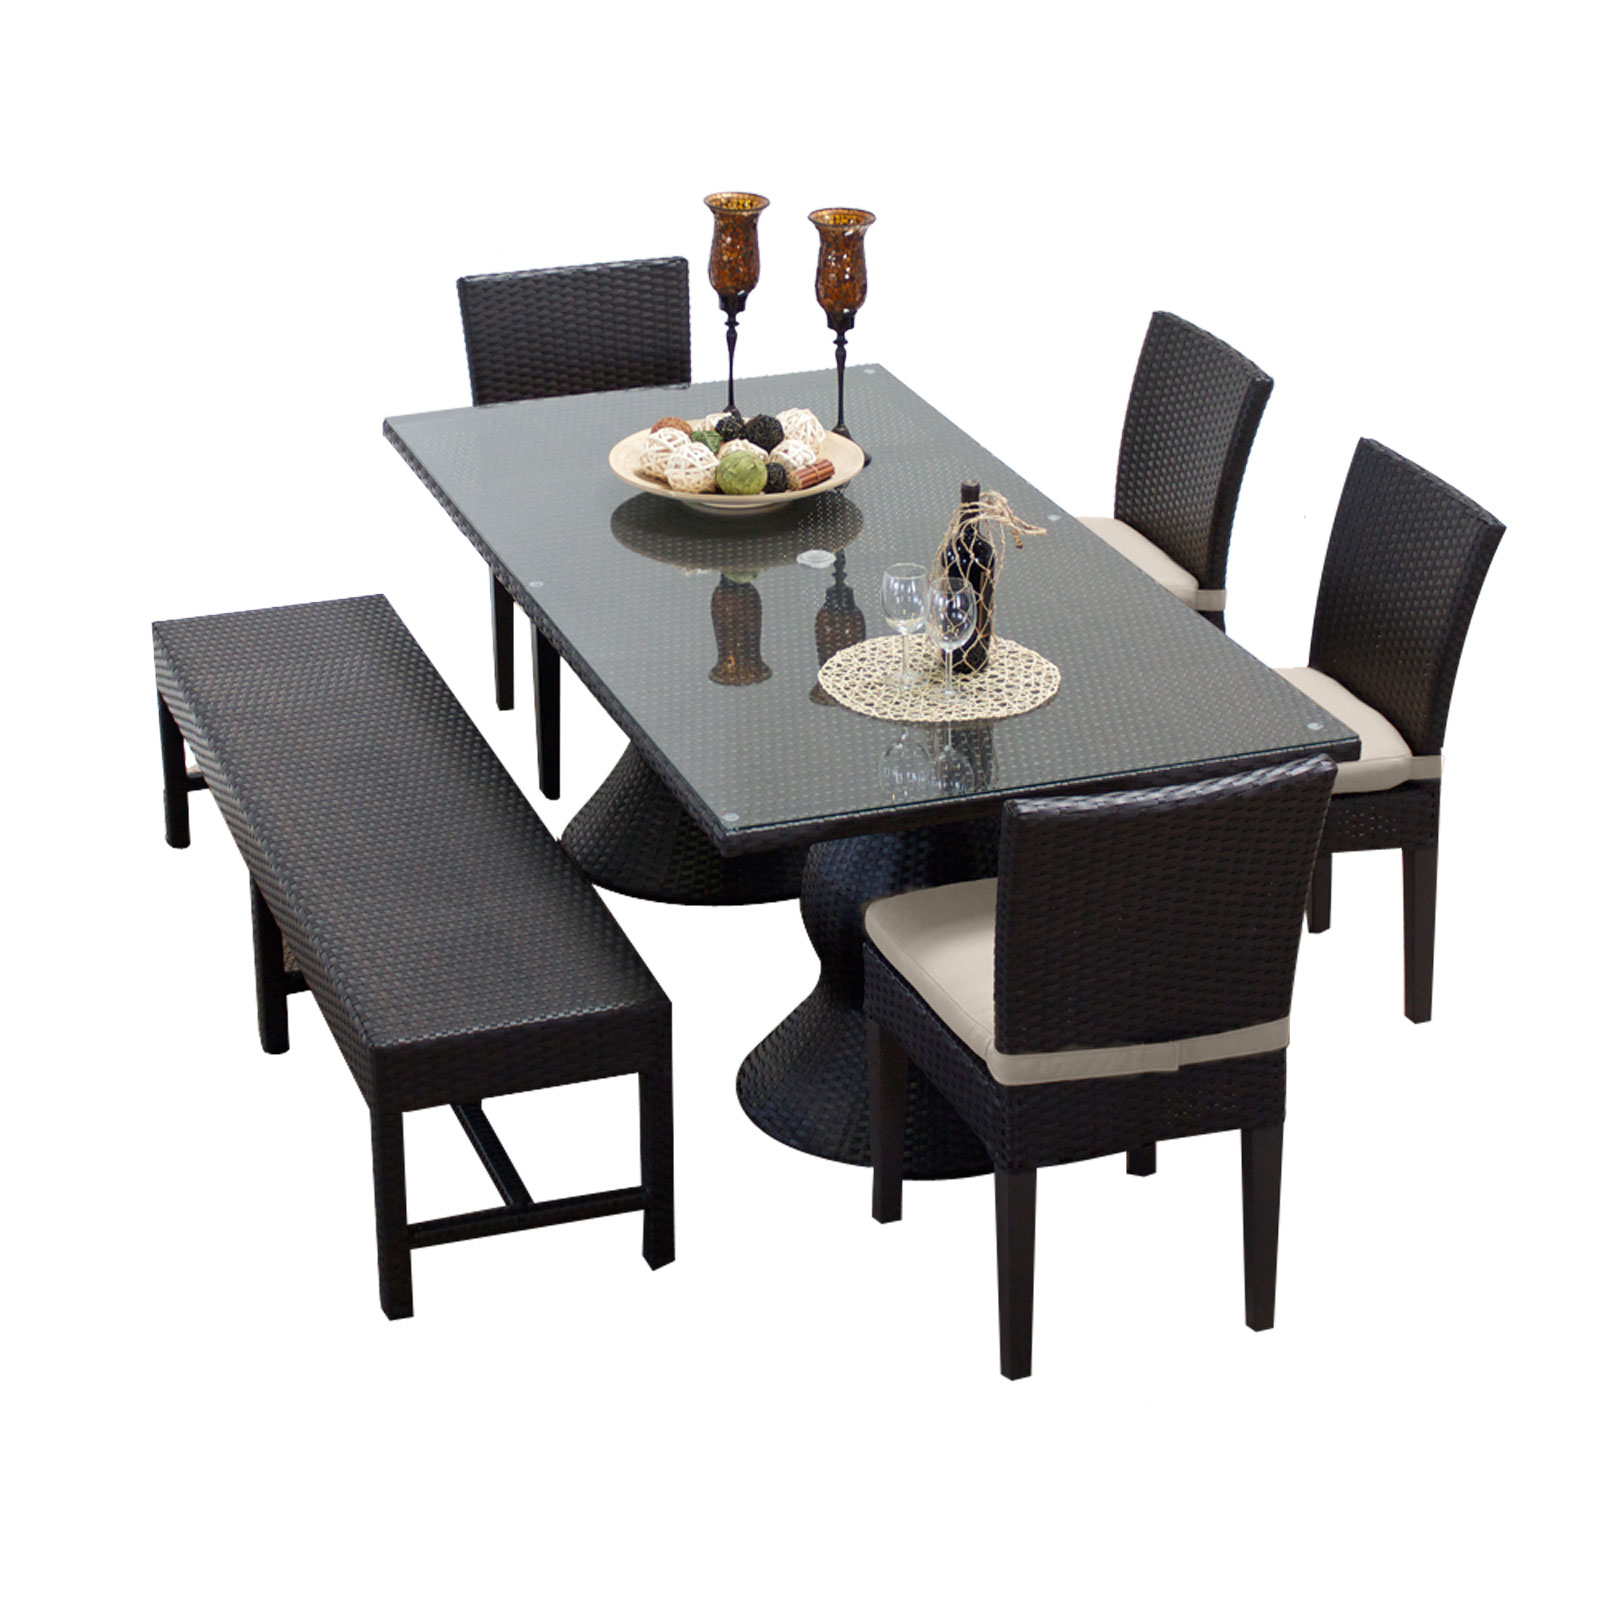 Saturn Rectangular Outdoor Patio Dining Table With 4 Chairs and 1 Bench